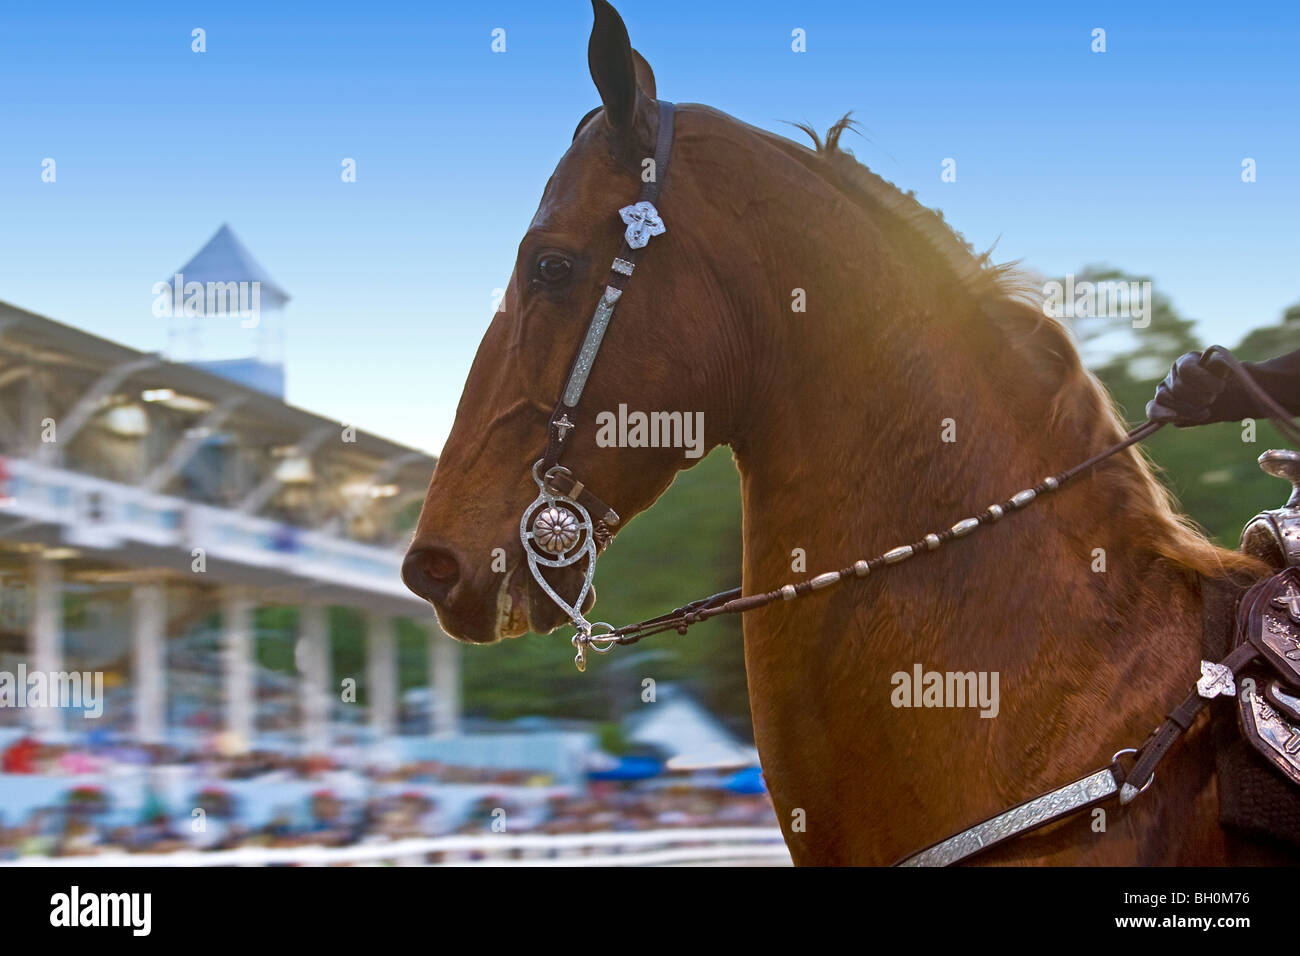 Western Horse Show High Resolution Stock Photography And Images Alamy